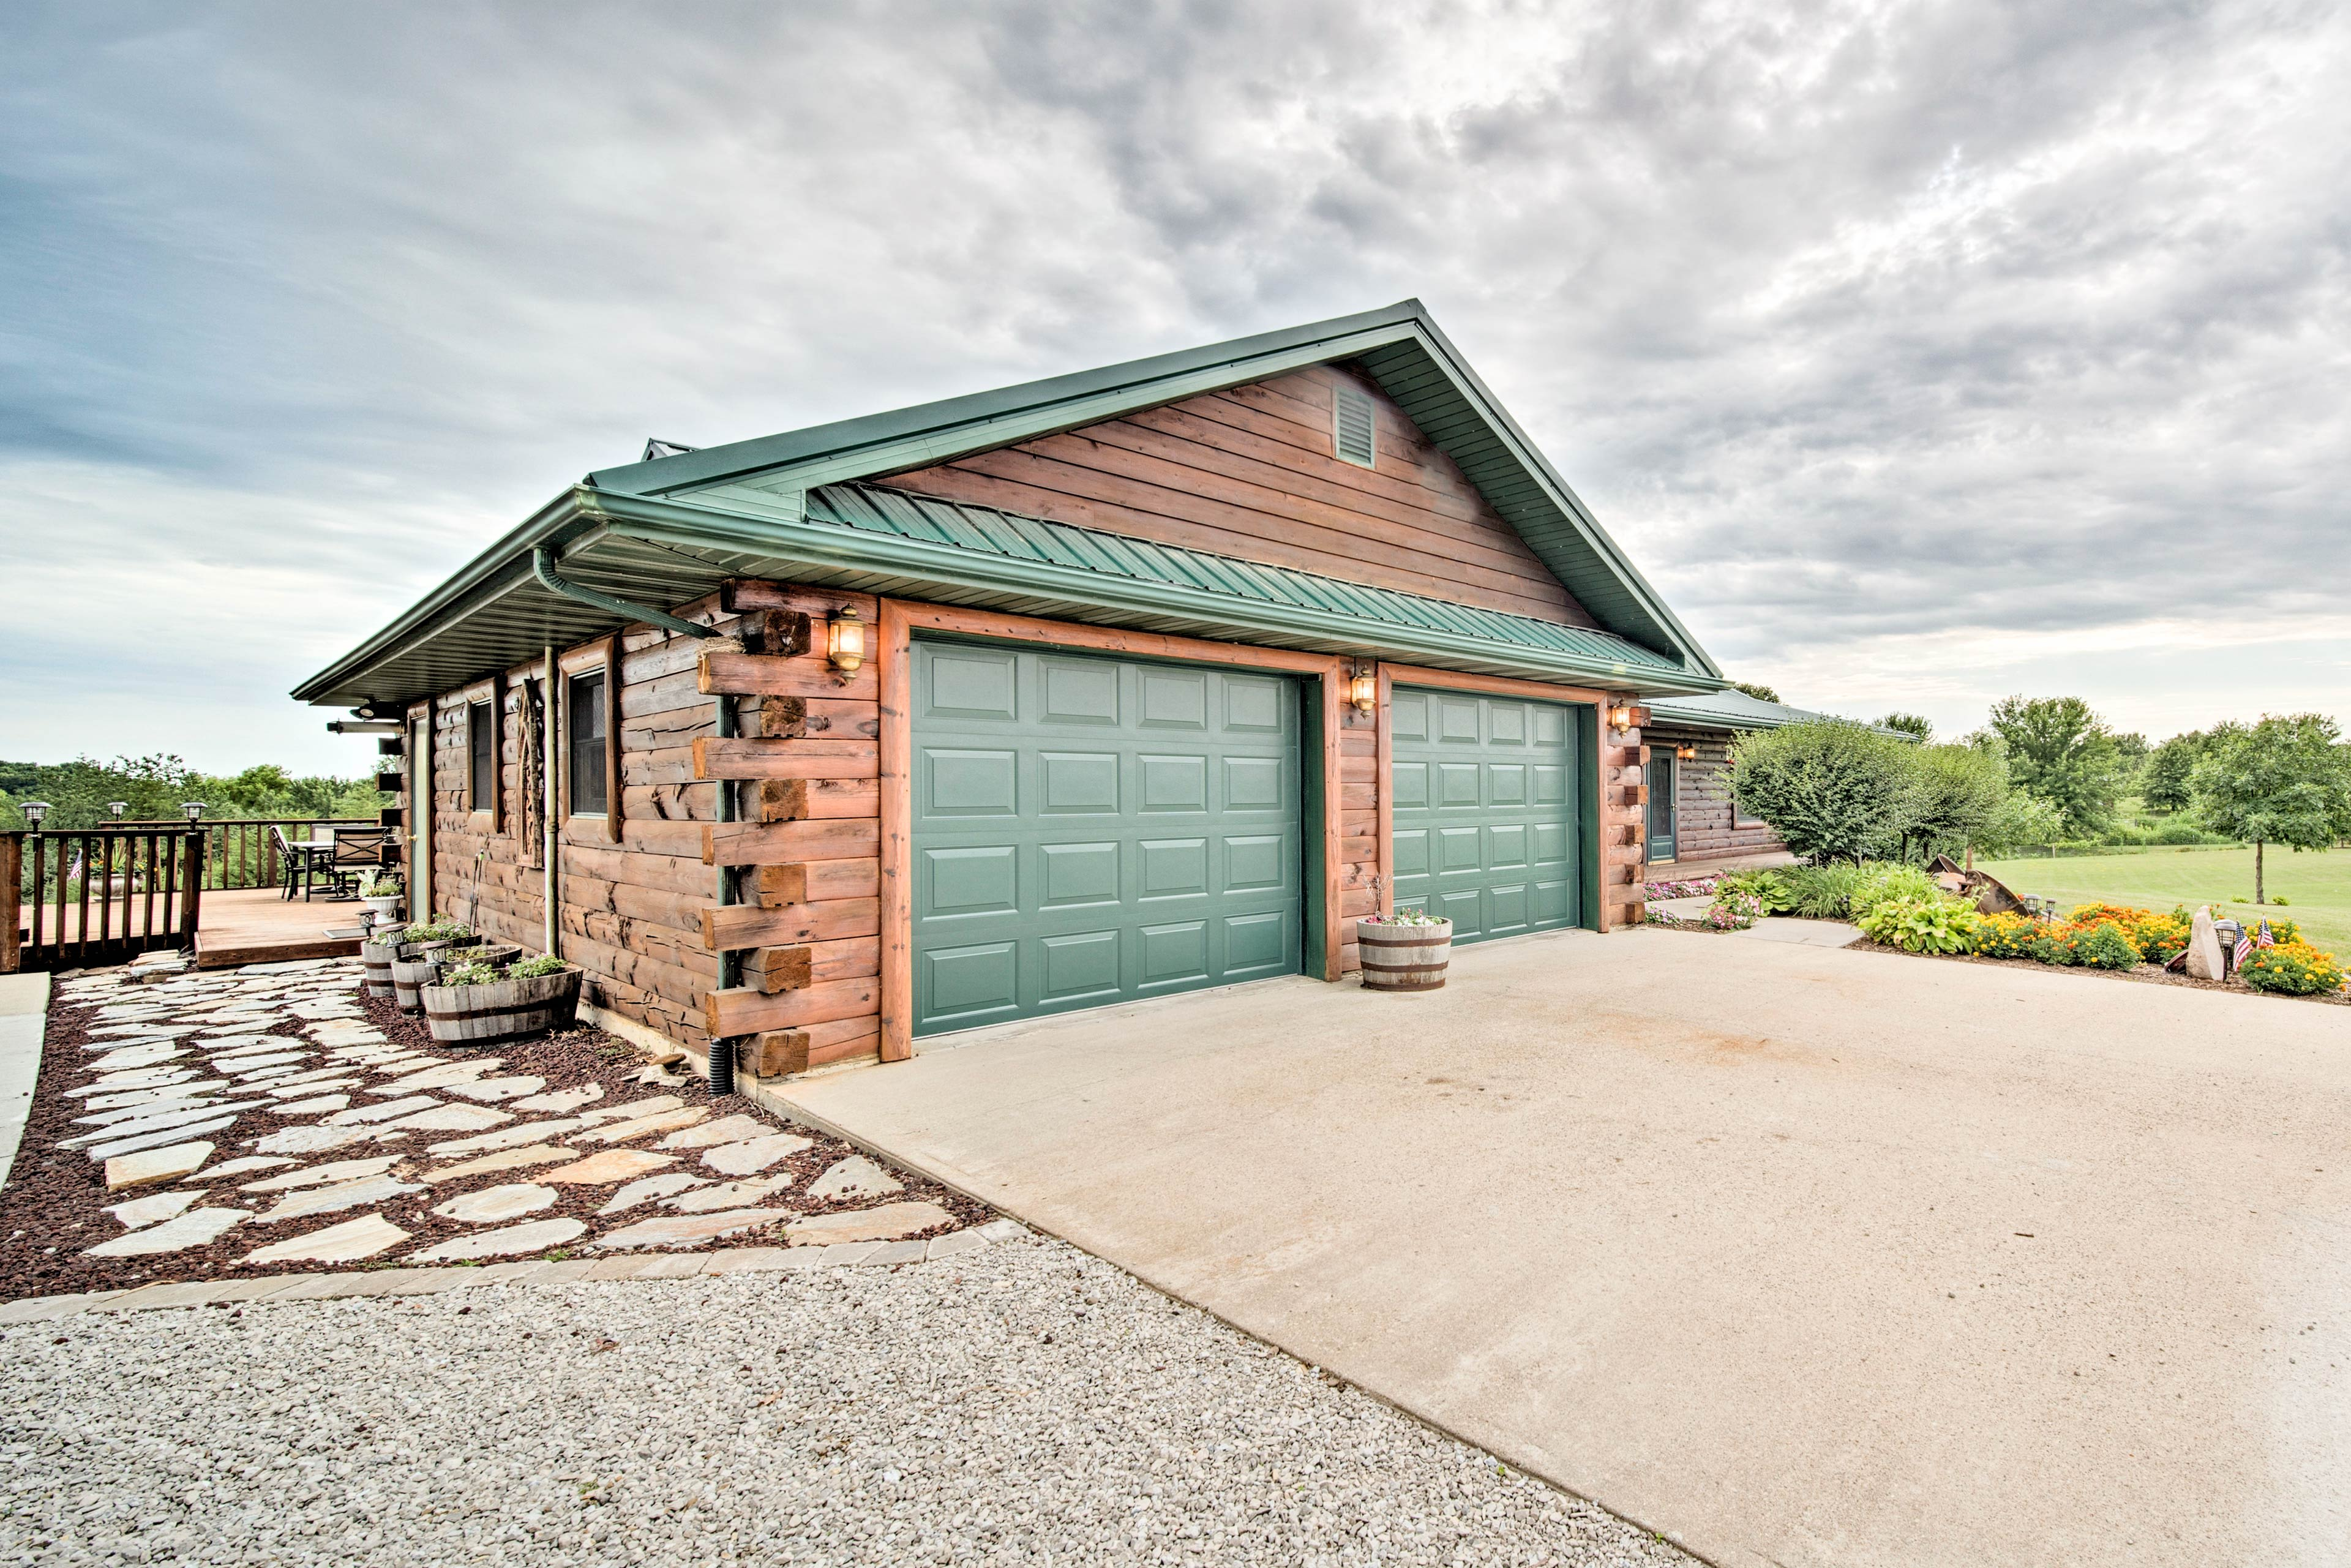 The driveway offers ample parking space!